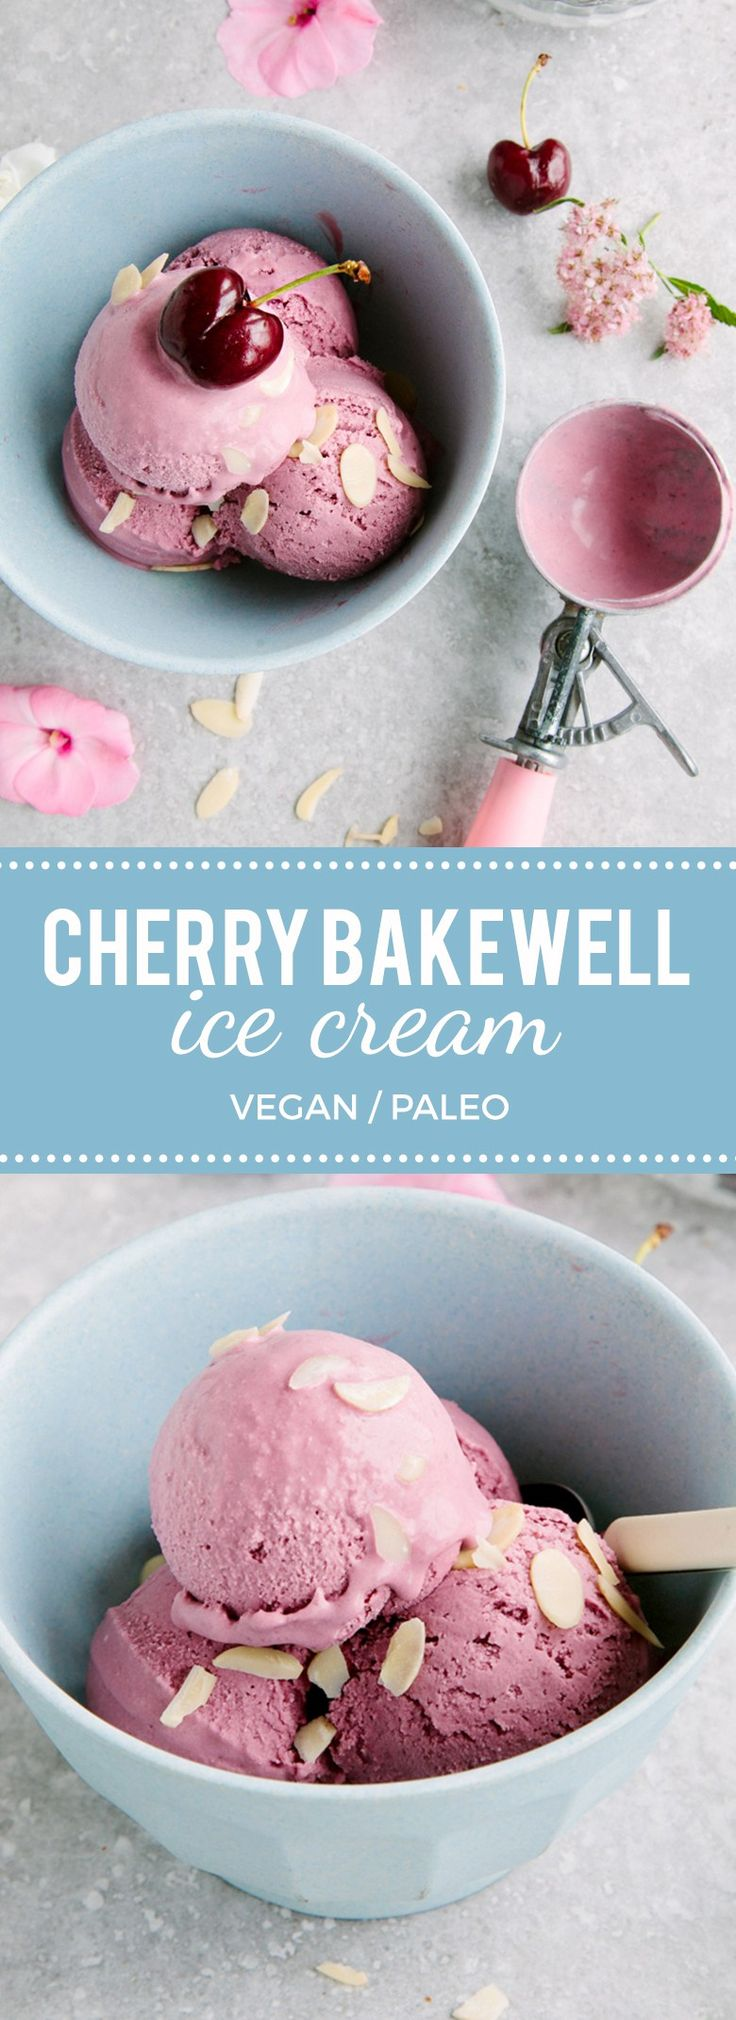 Cherry Bakewell Ice Cream (Vegan + Paleo)                                                                                                                                                                                 More